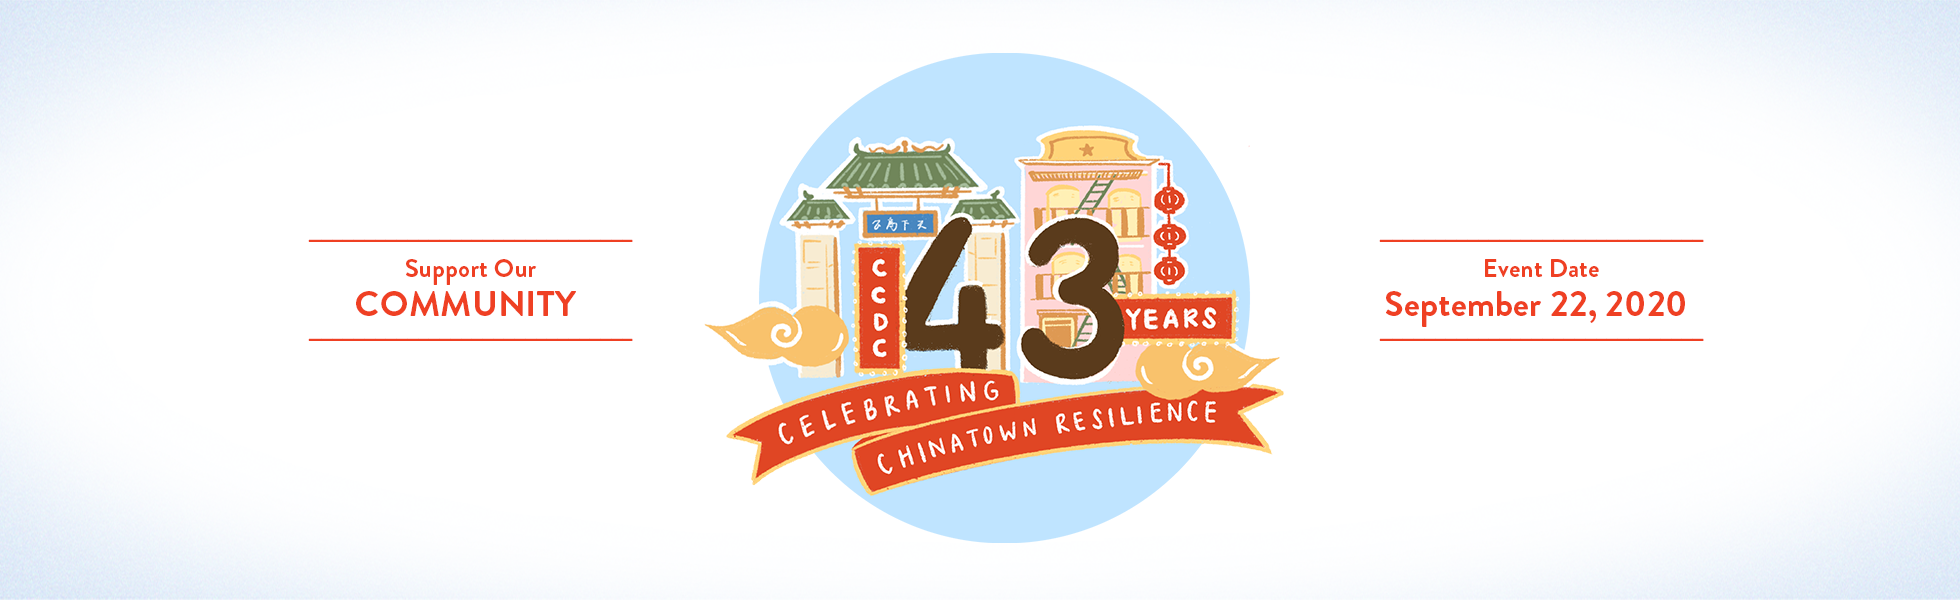 ccdc 43 years celebrating chinatown resilience